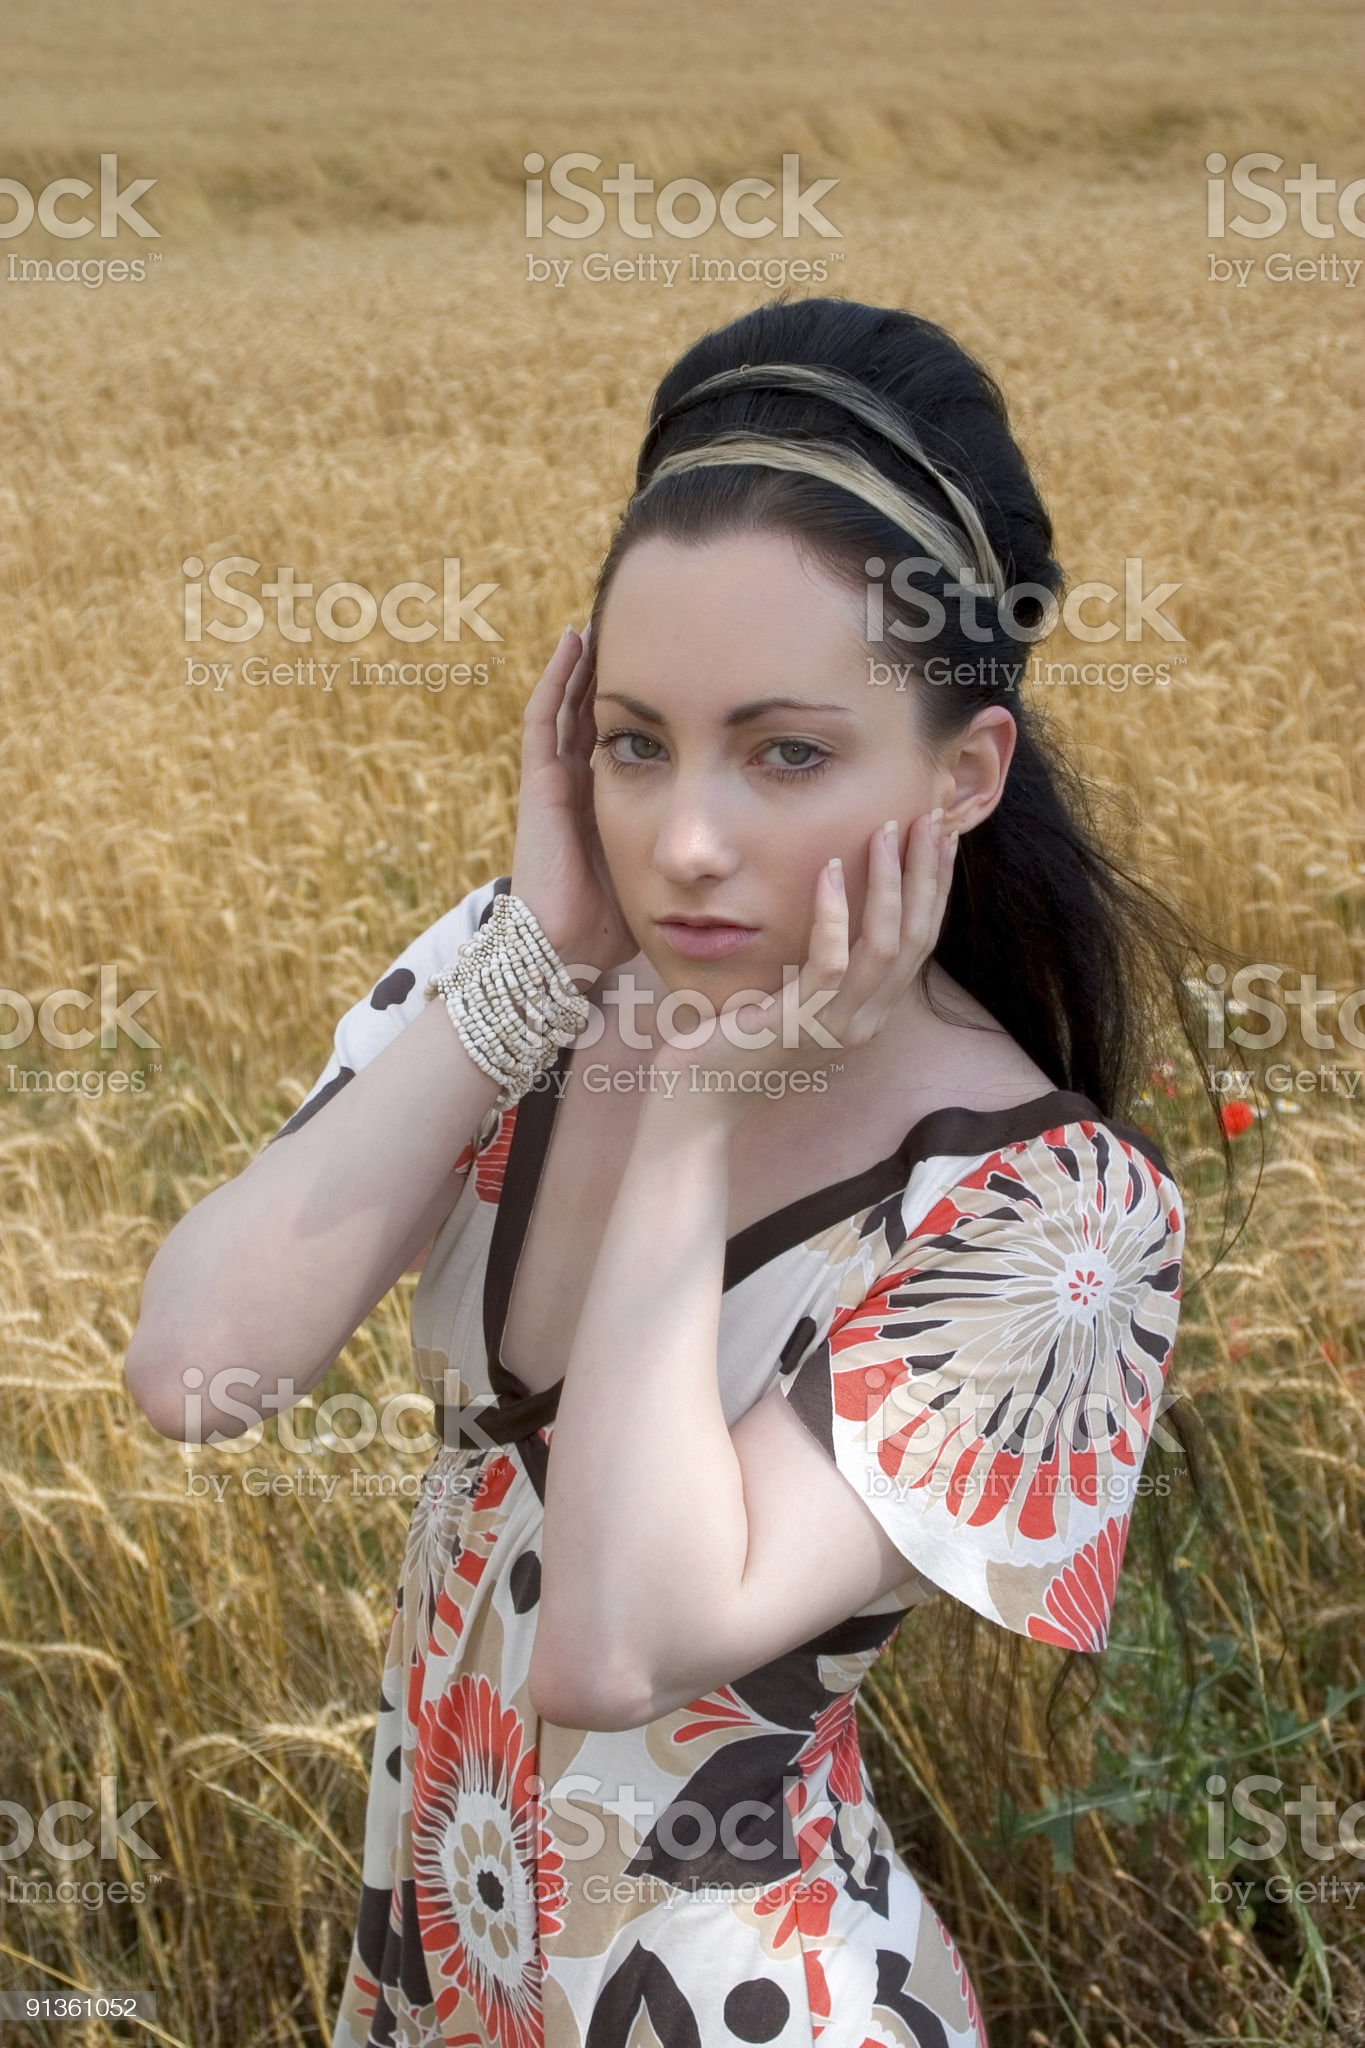 female expression art royalty-free stock photo